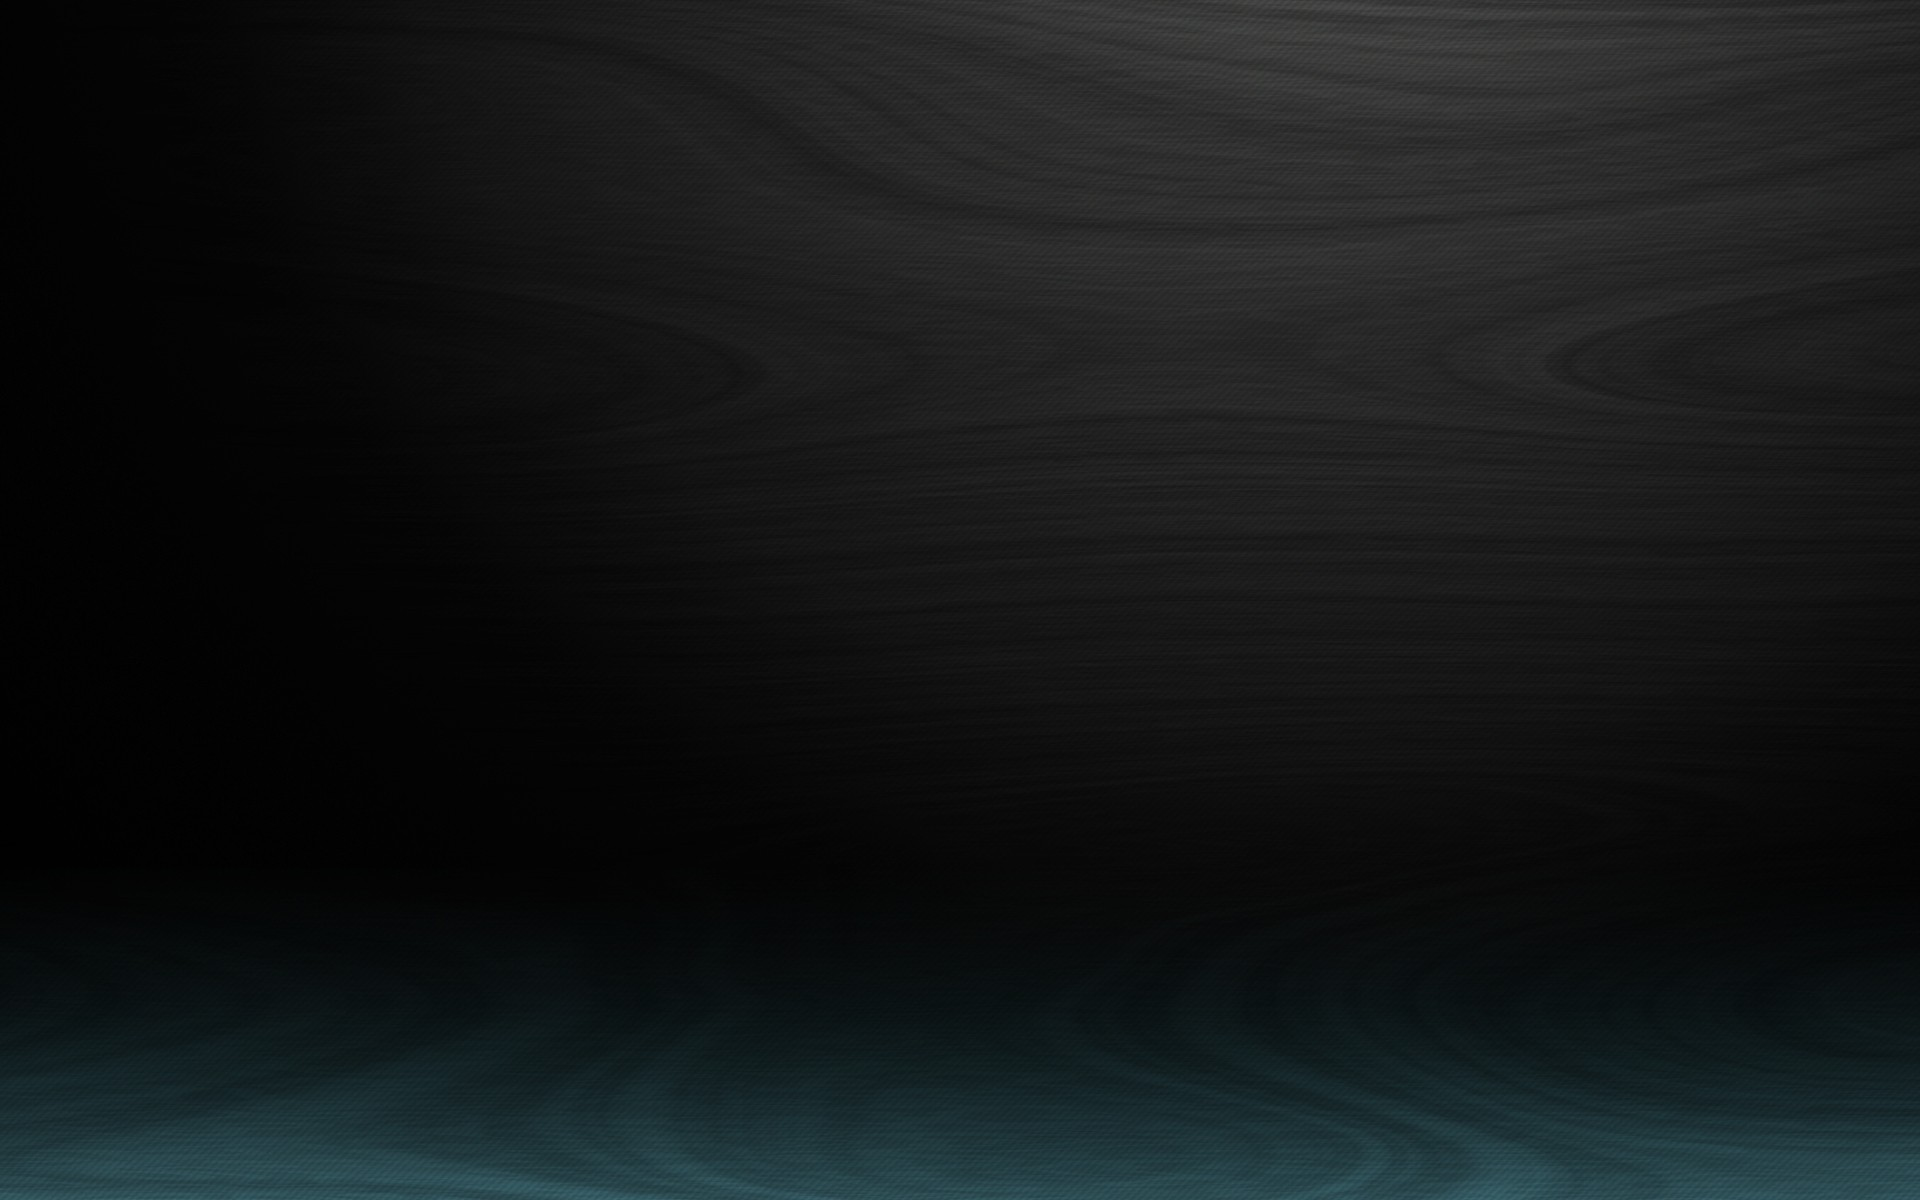 Black Texture Background Hd Posted By Christopher Walker